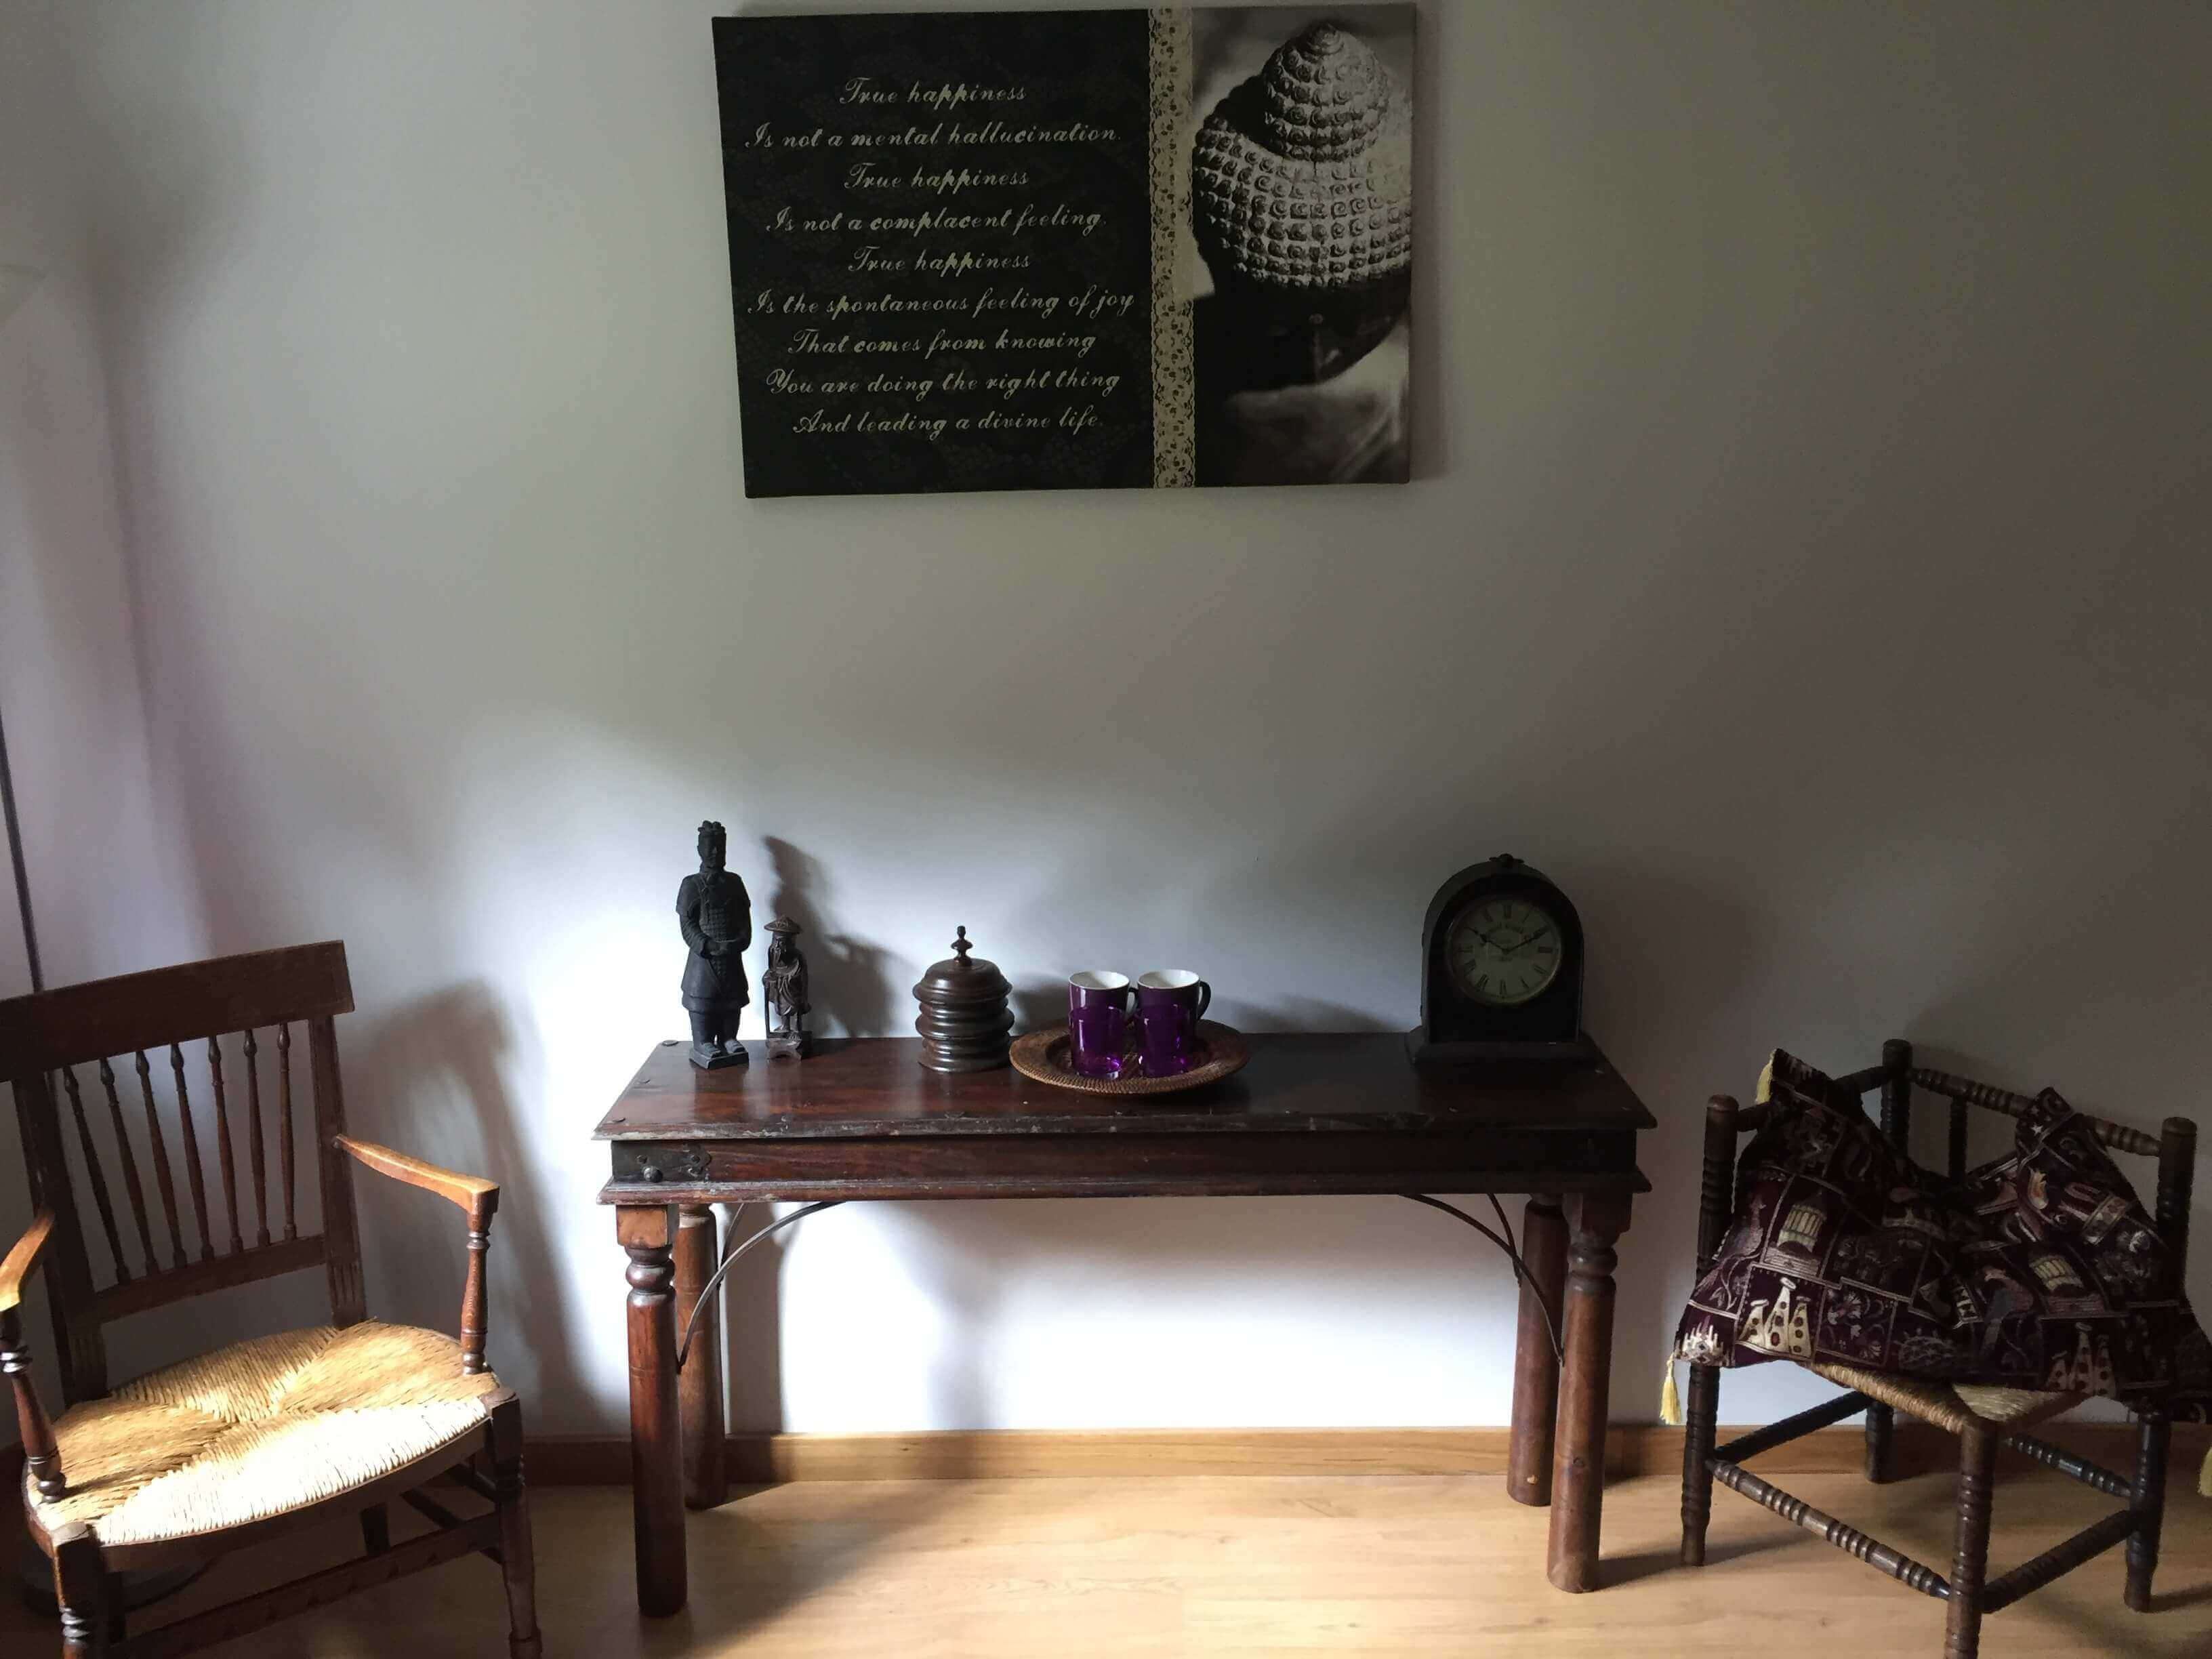 Far East kamer, de missionaris kamer